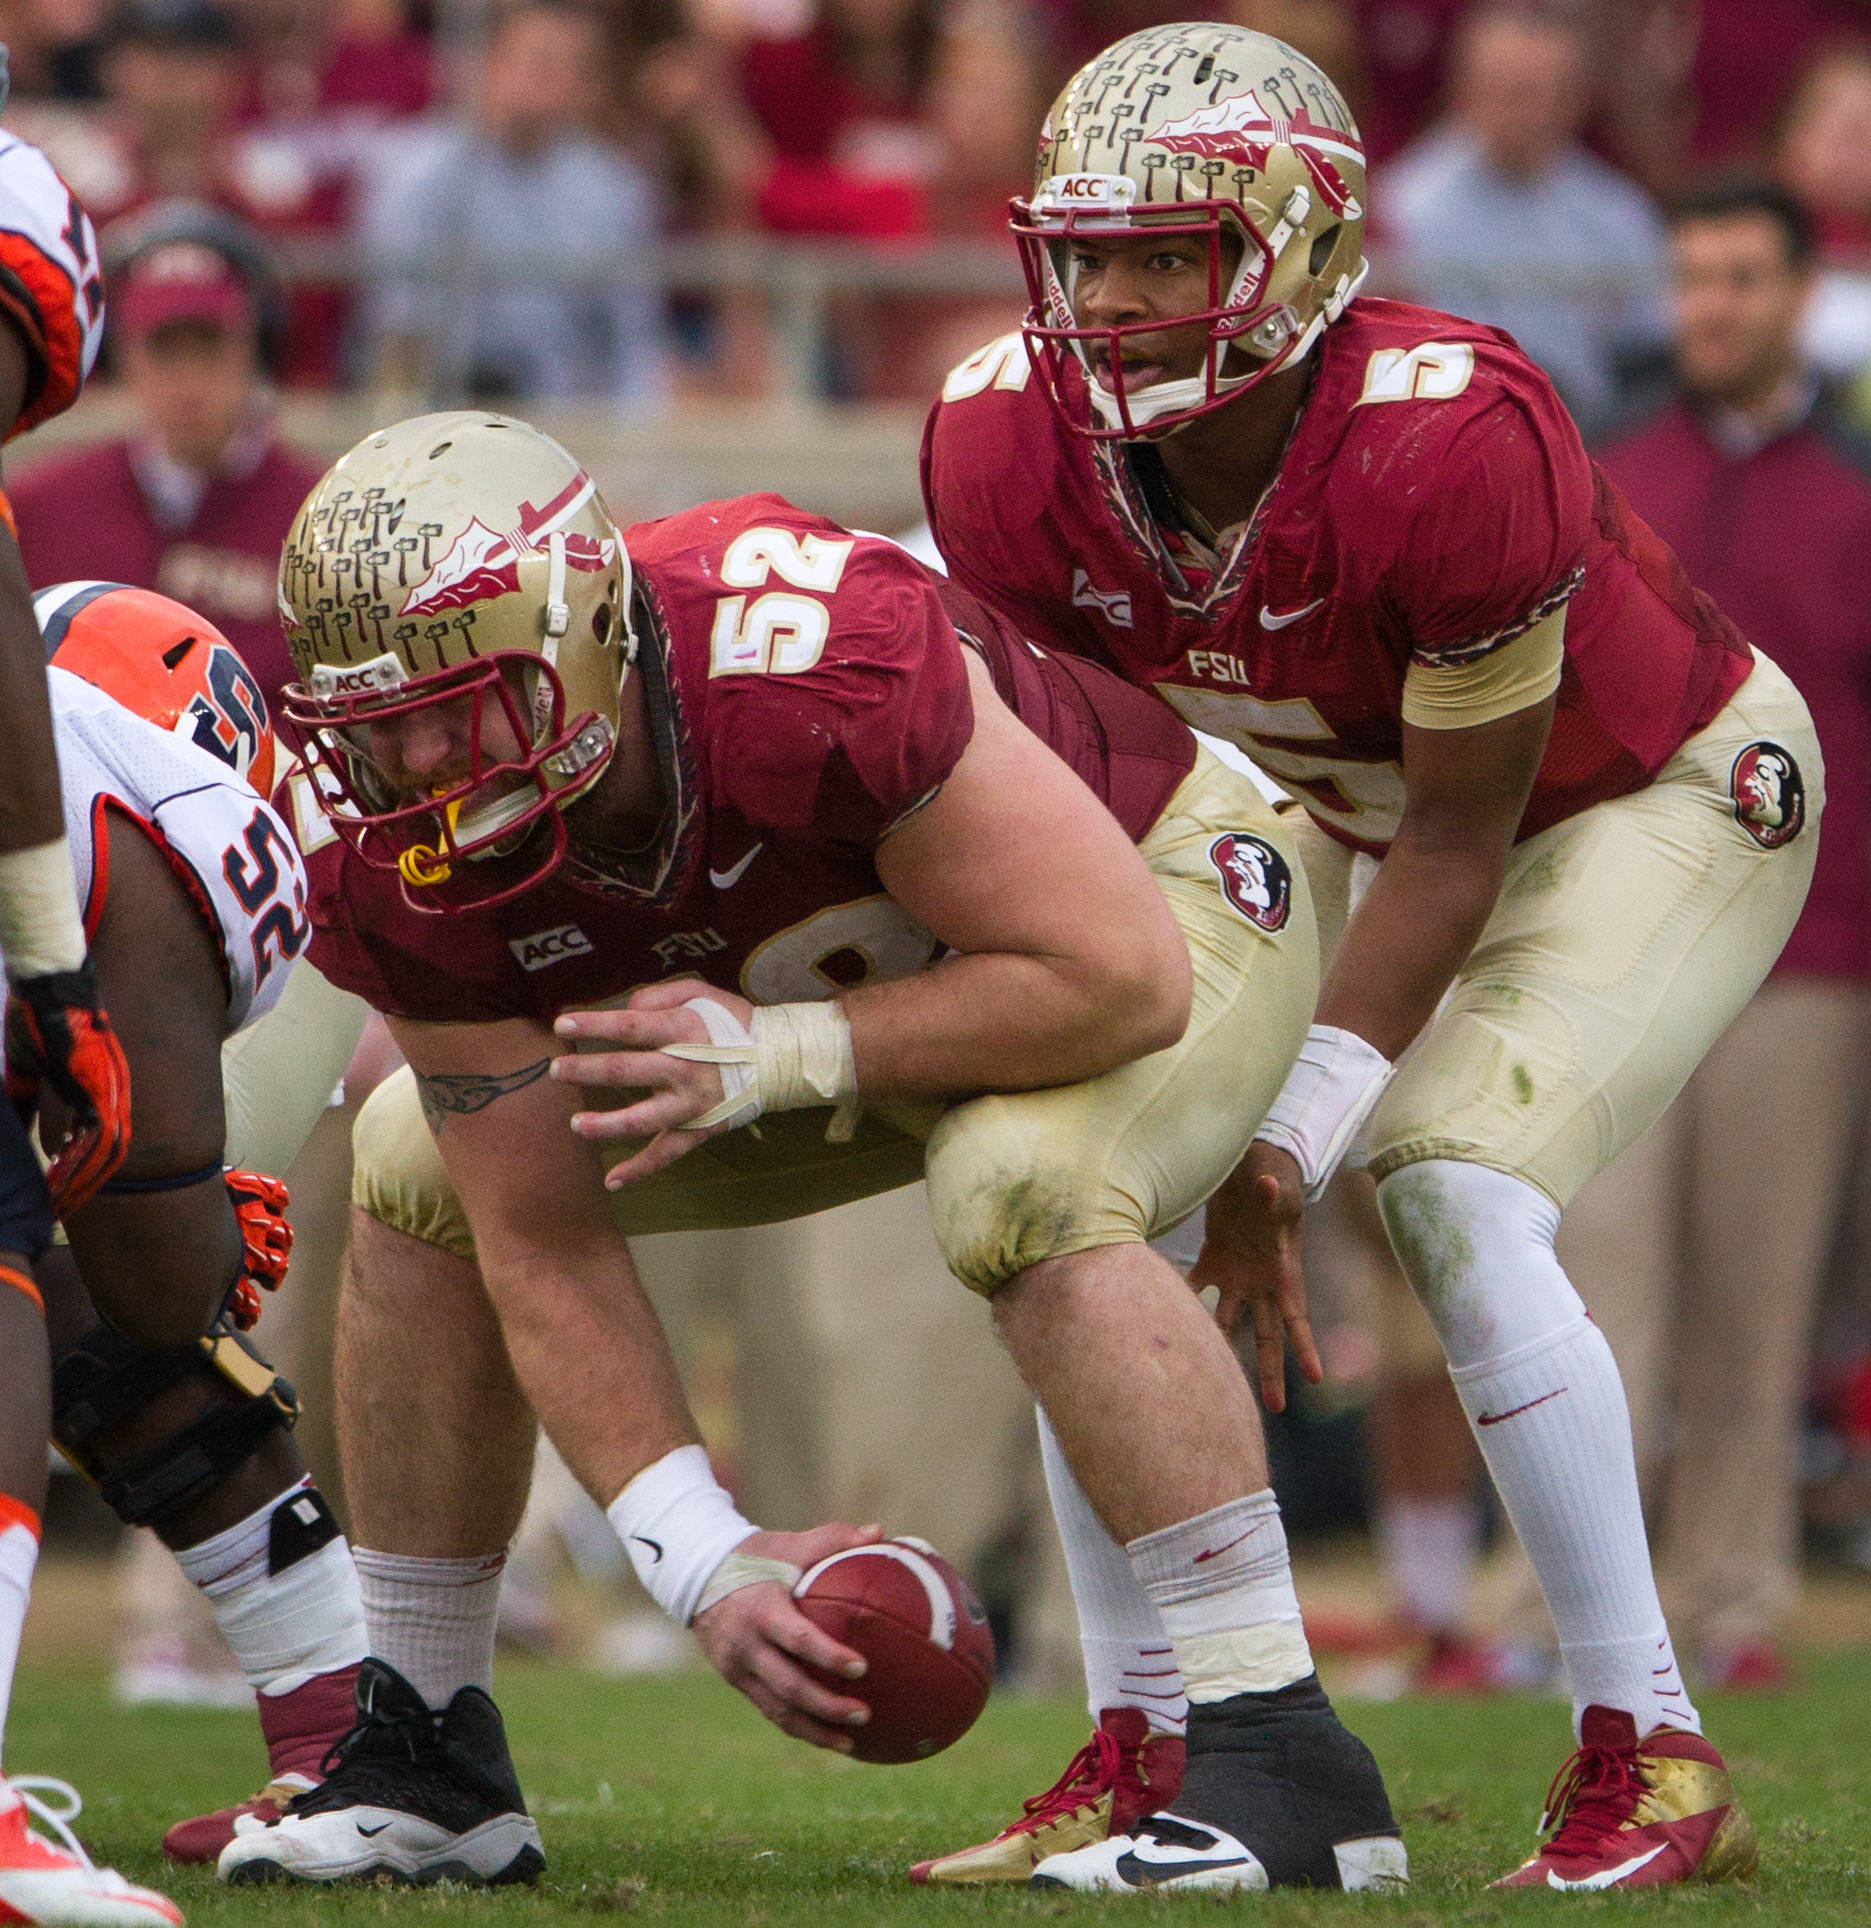 Bryan Stork (52) snaps the ball to Jameis Winston (5) during FSU Football's 59-3 win over Syracuse on Saturday, November 16, 2013 in Tallahassee, Fla. Photo by Mike Schwarz.